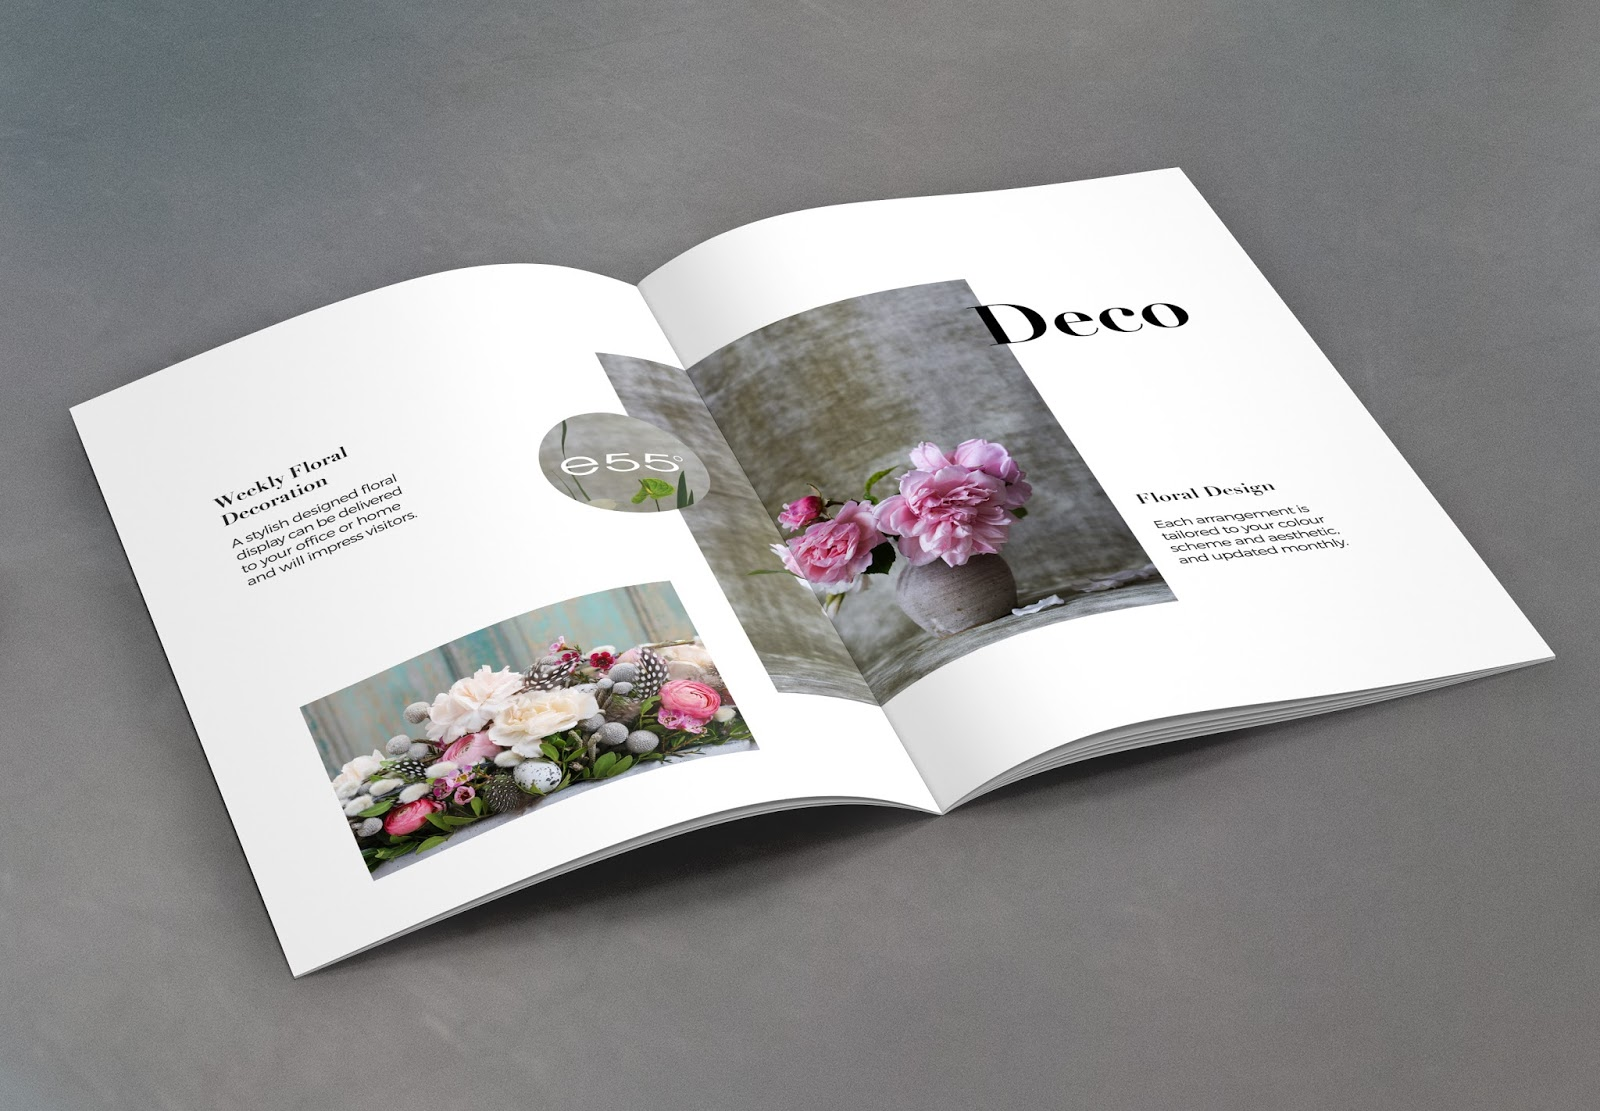 Floral arrangements, e55 degrees, Floral atelier design, Corporate brochure